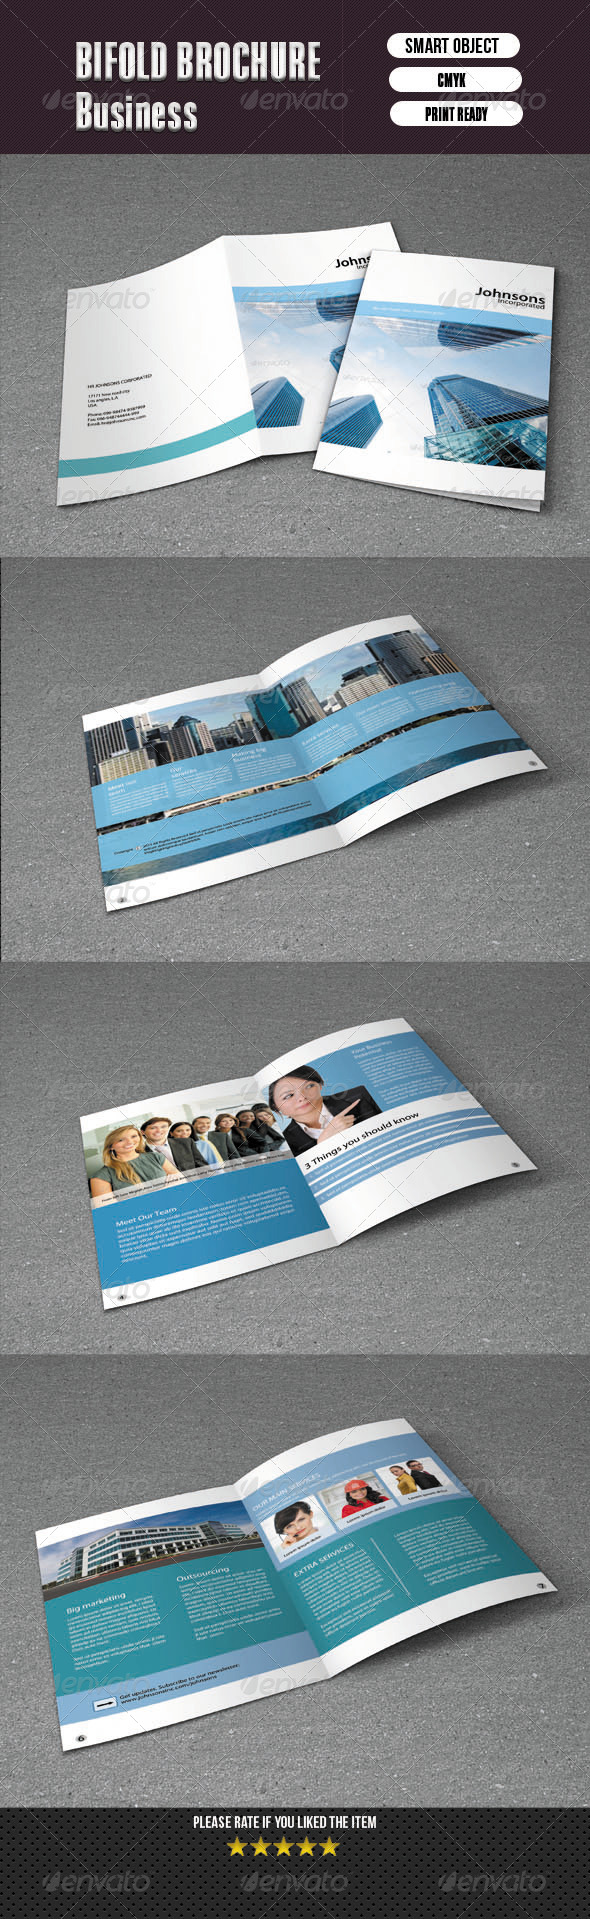 Bifold Brochure For Business-8 Pages - Corporate Brochures